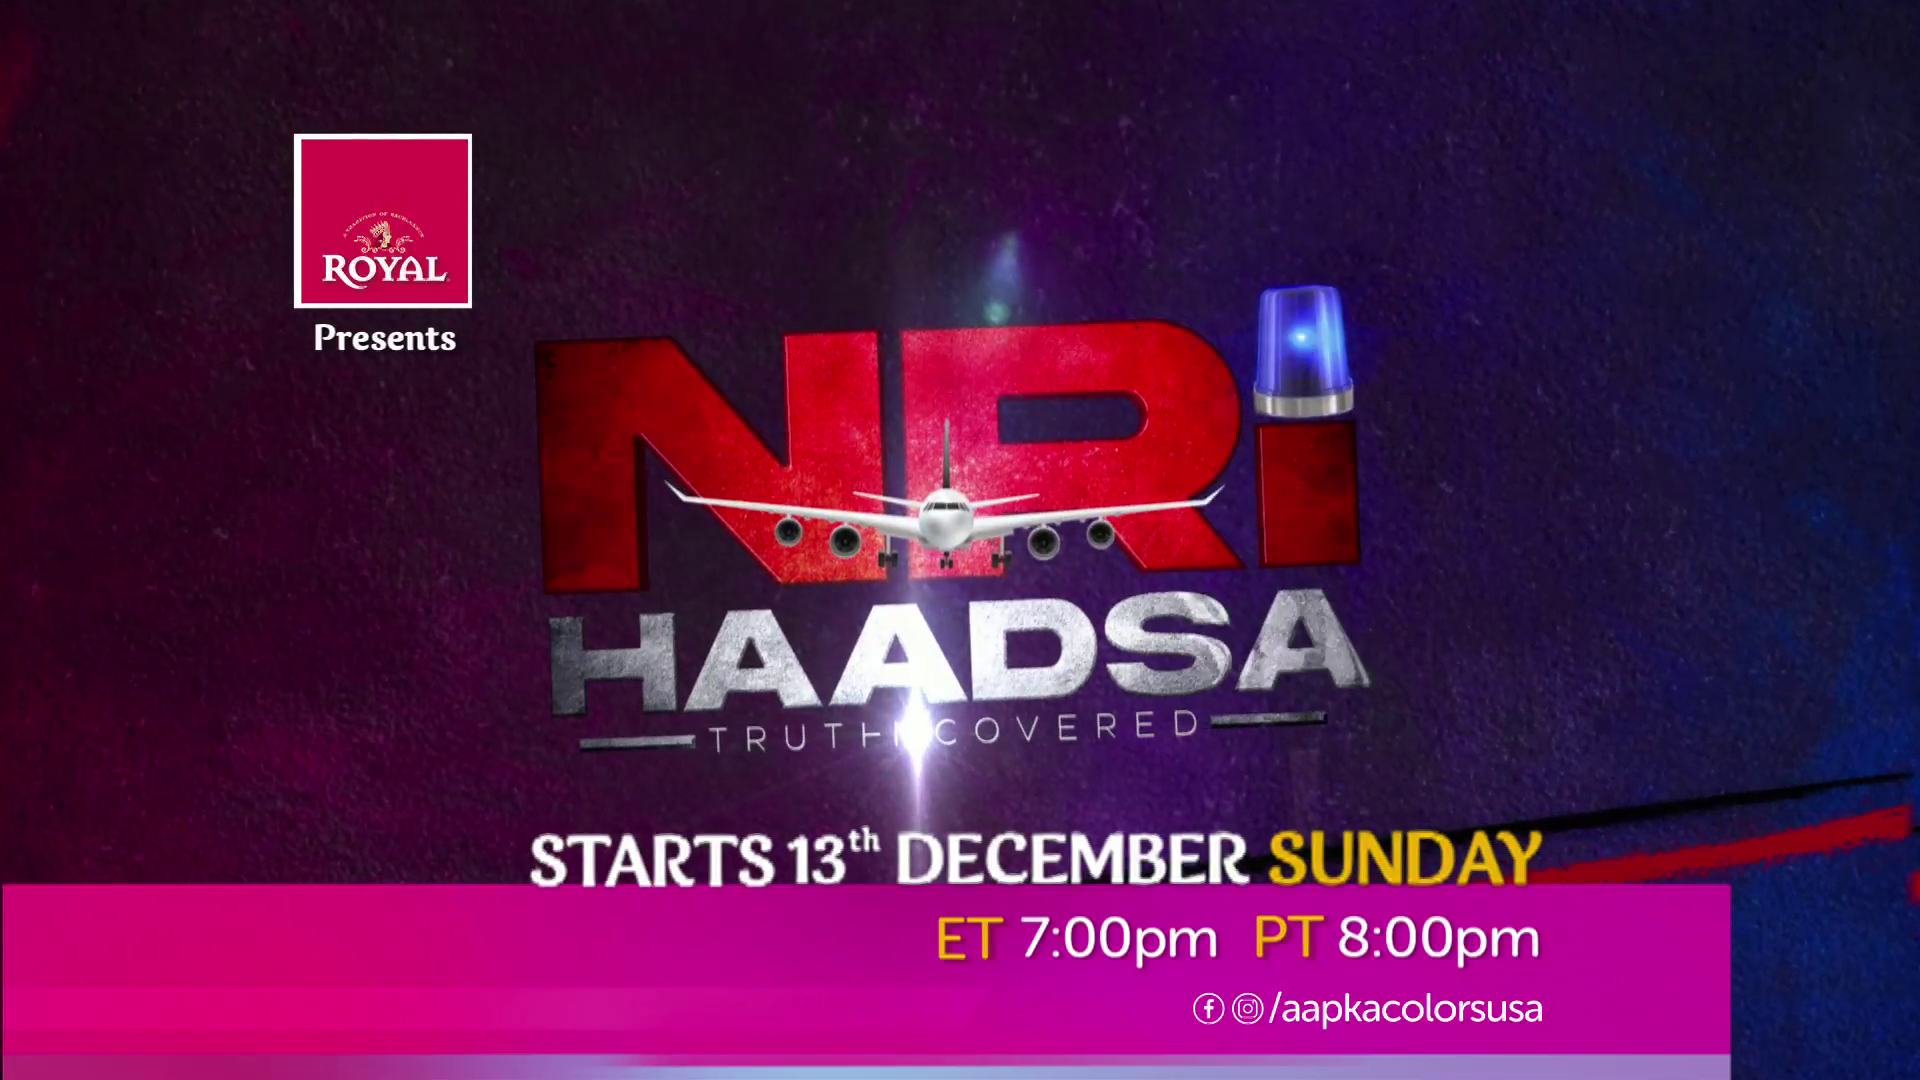 NRI Haadsa Starts 13th December Sunday at ET 7:00pm PT 8:00pm on Aapka Colors